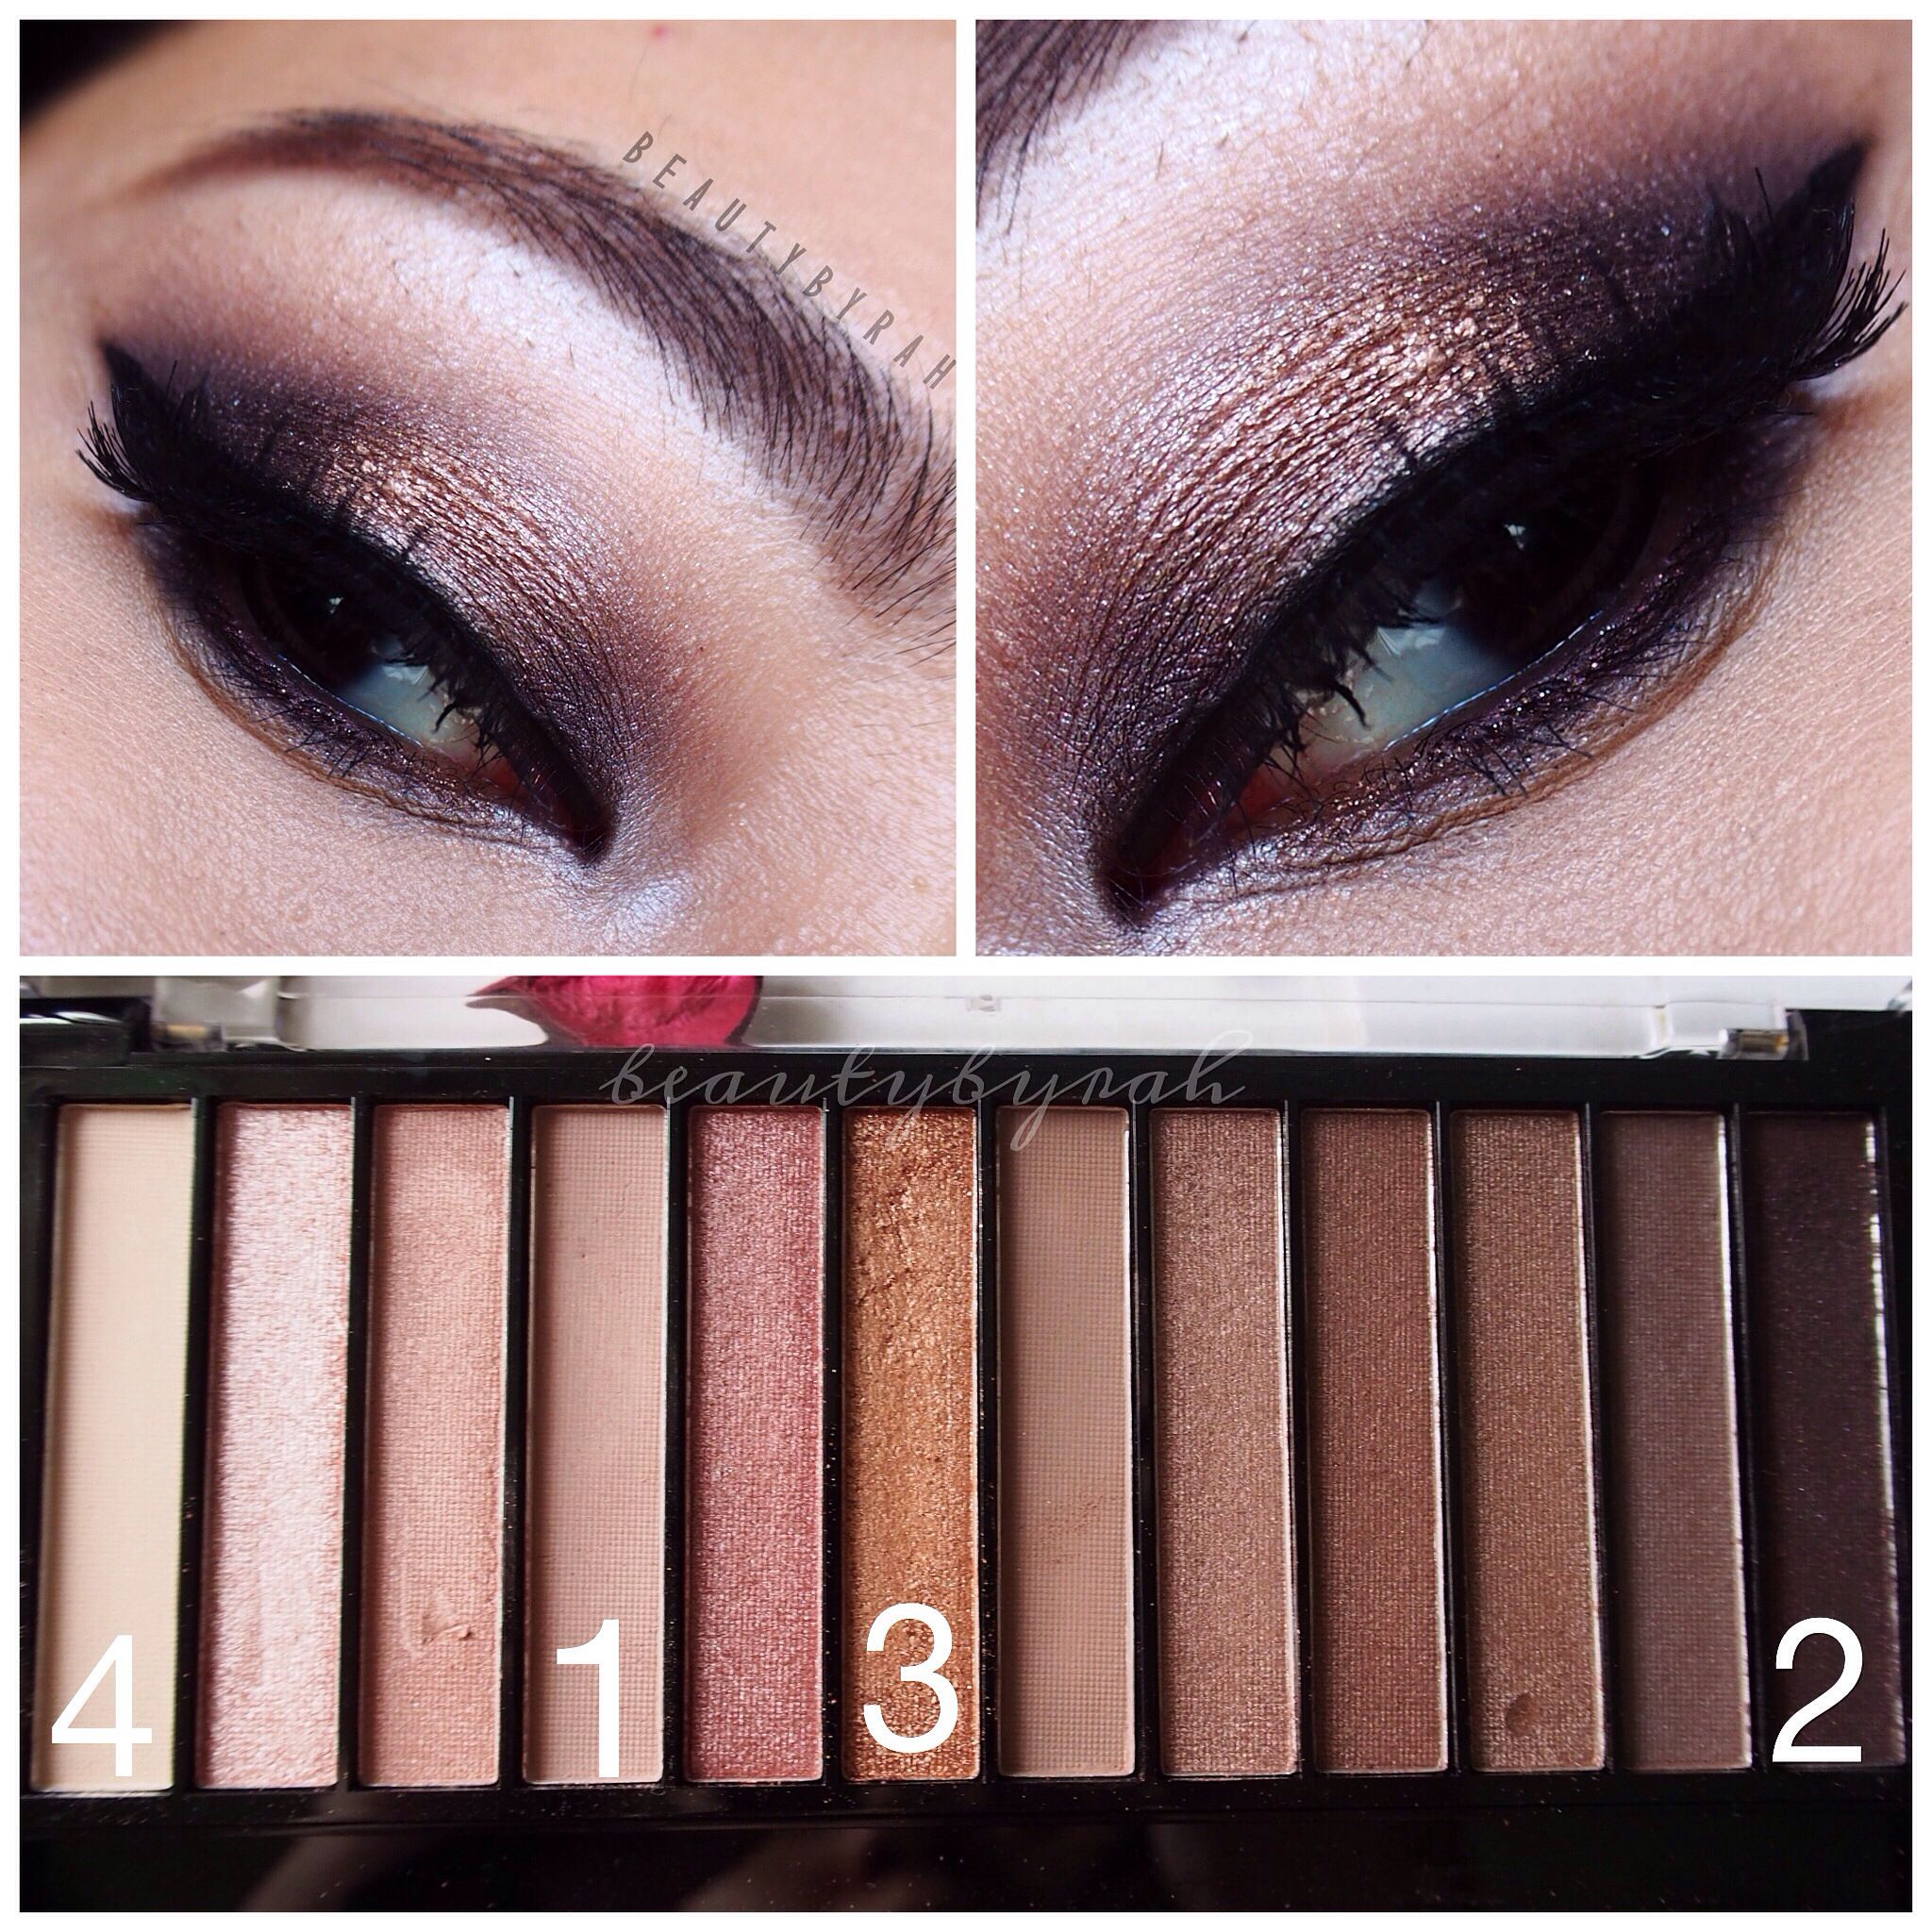 Eyeshadow look using the makeup revolution iconic 3 palette - @beautybyrah on Instagram